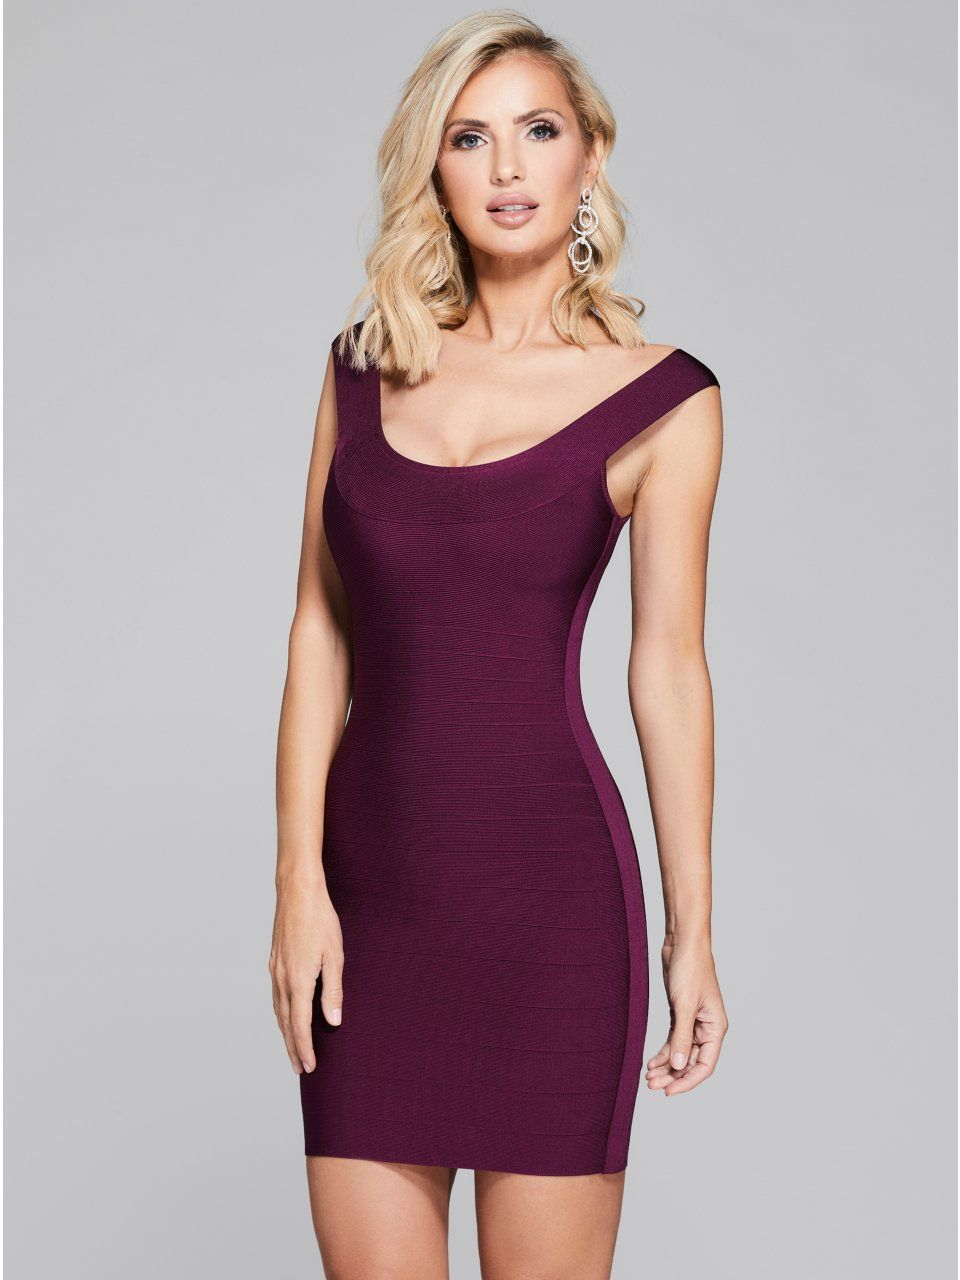 d60e0769060 Solange Bandage Dress in 2019 | Products | Dresses, Guess dress, Fashion